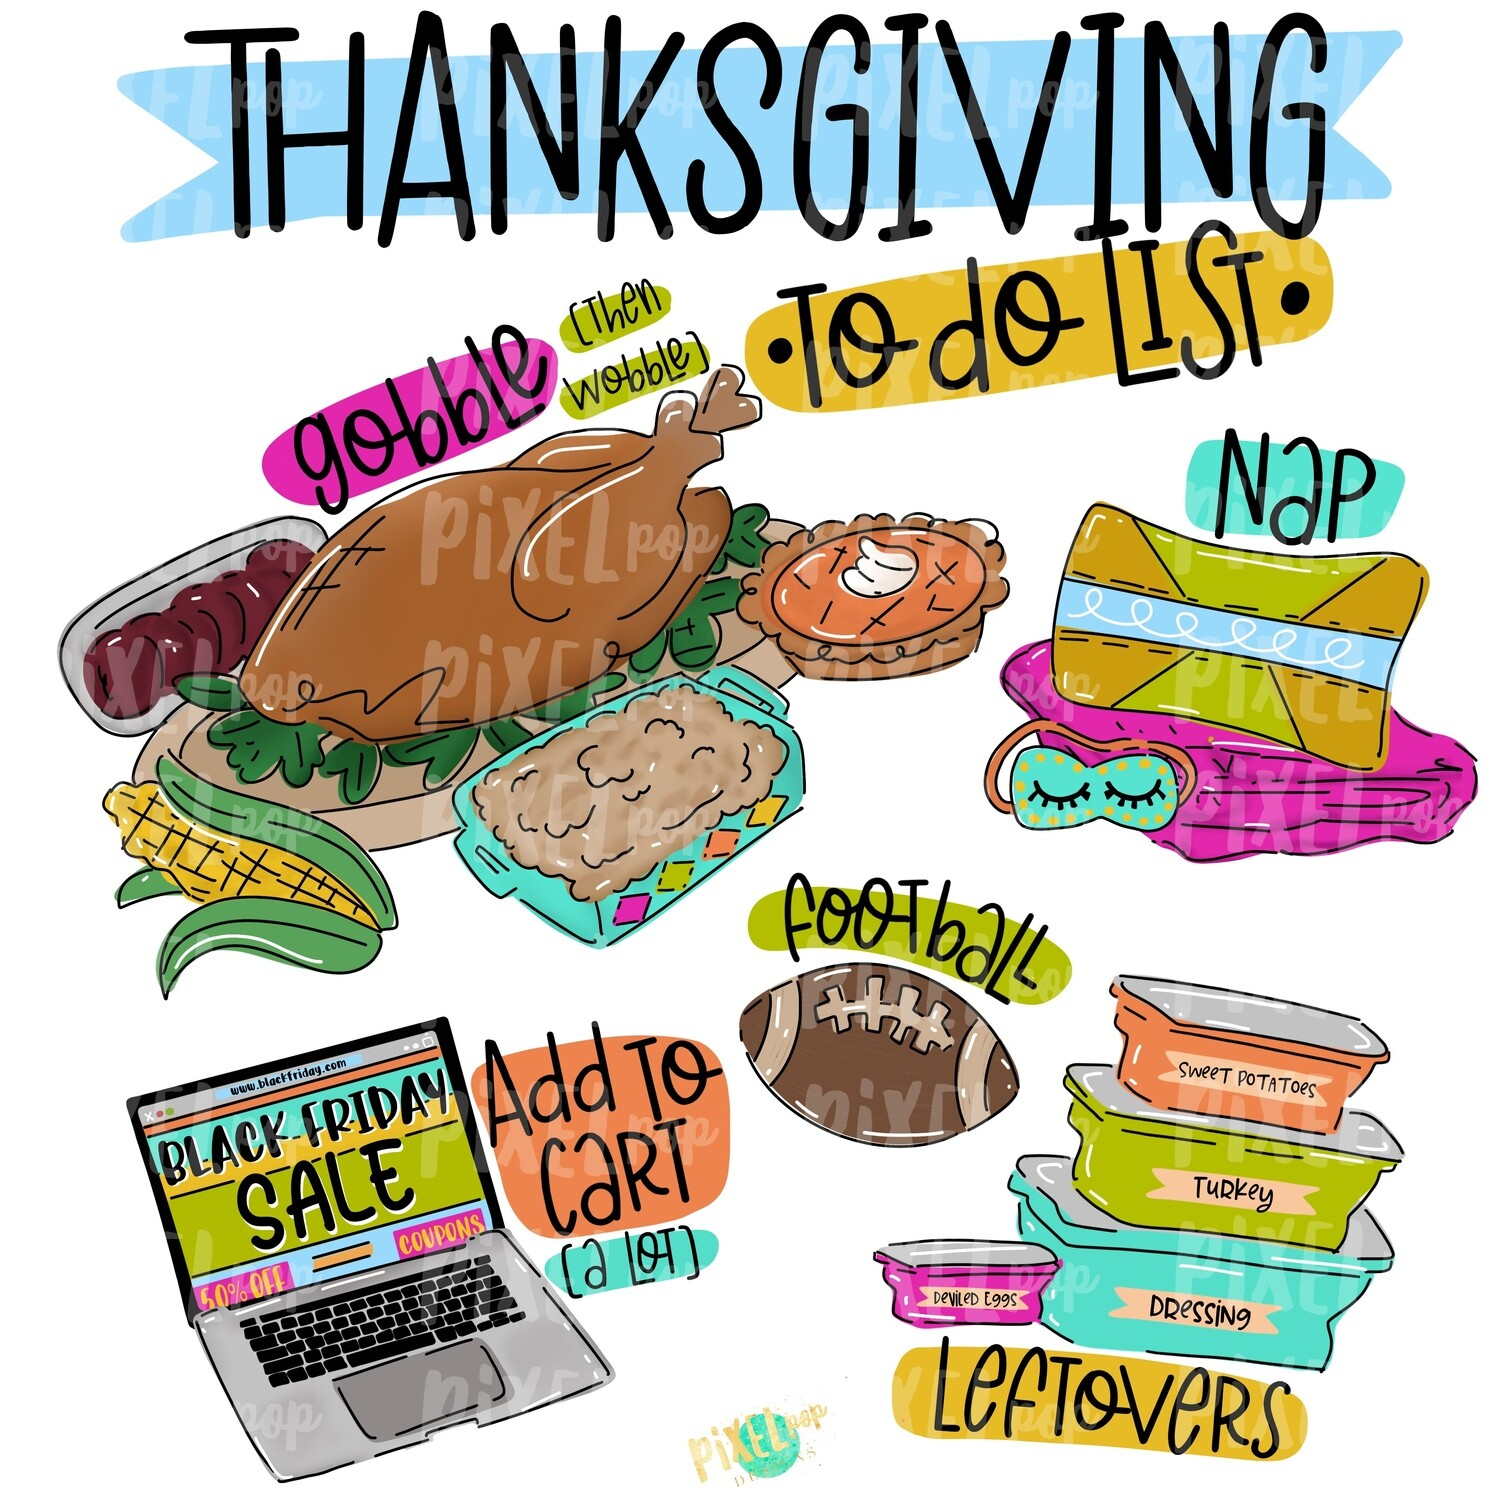 Thanksgiving To Do List PNG | Turkey Sublimation | Painted Digital Art | Sublimation Art | Thanksgiving | Digital Download | Printable